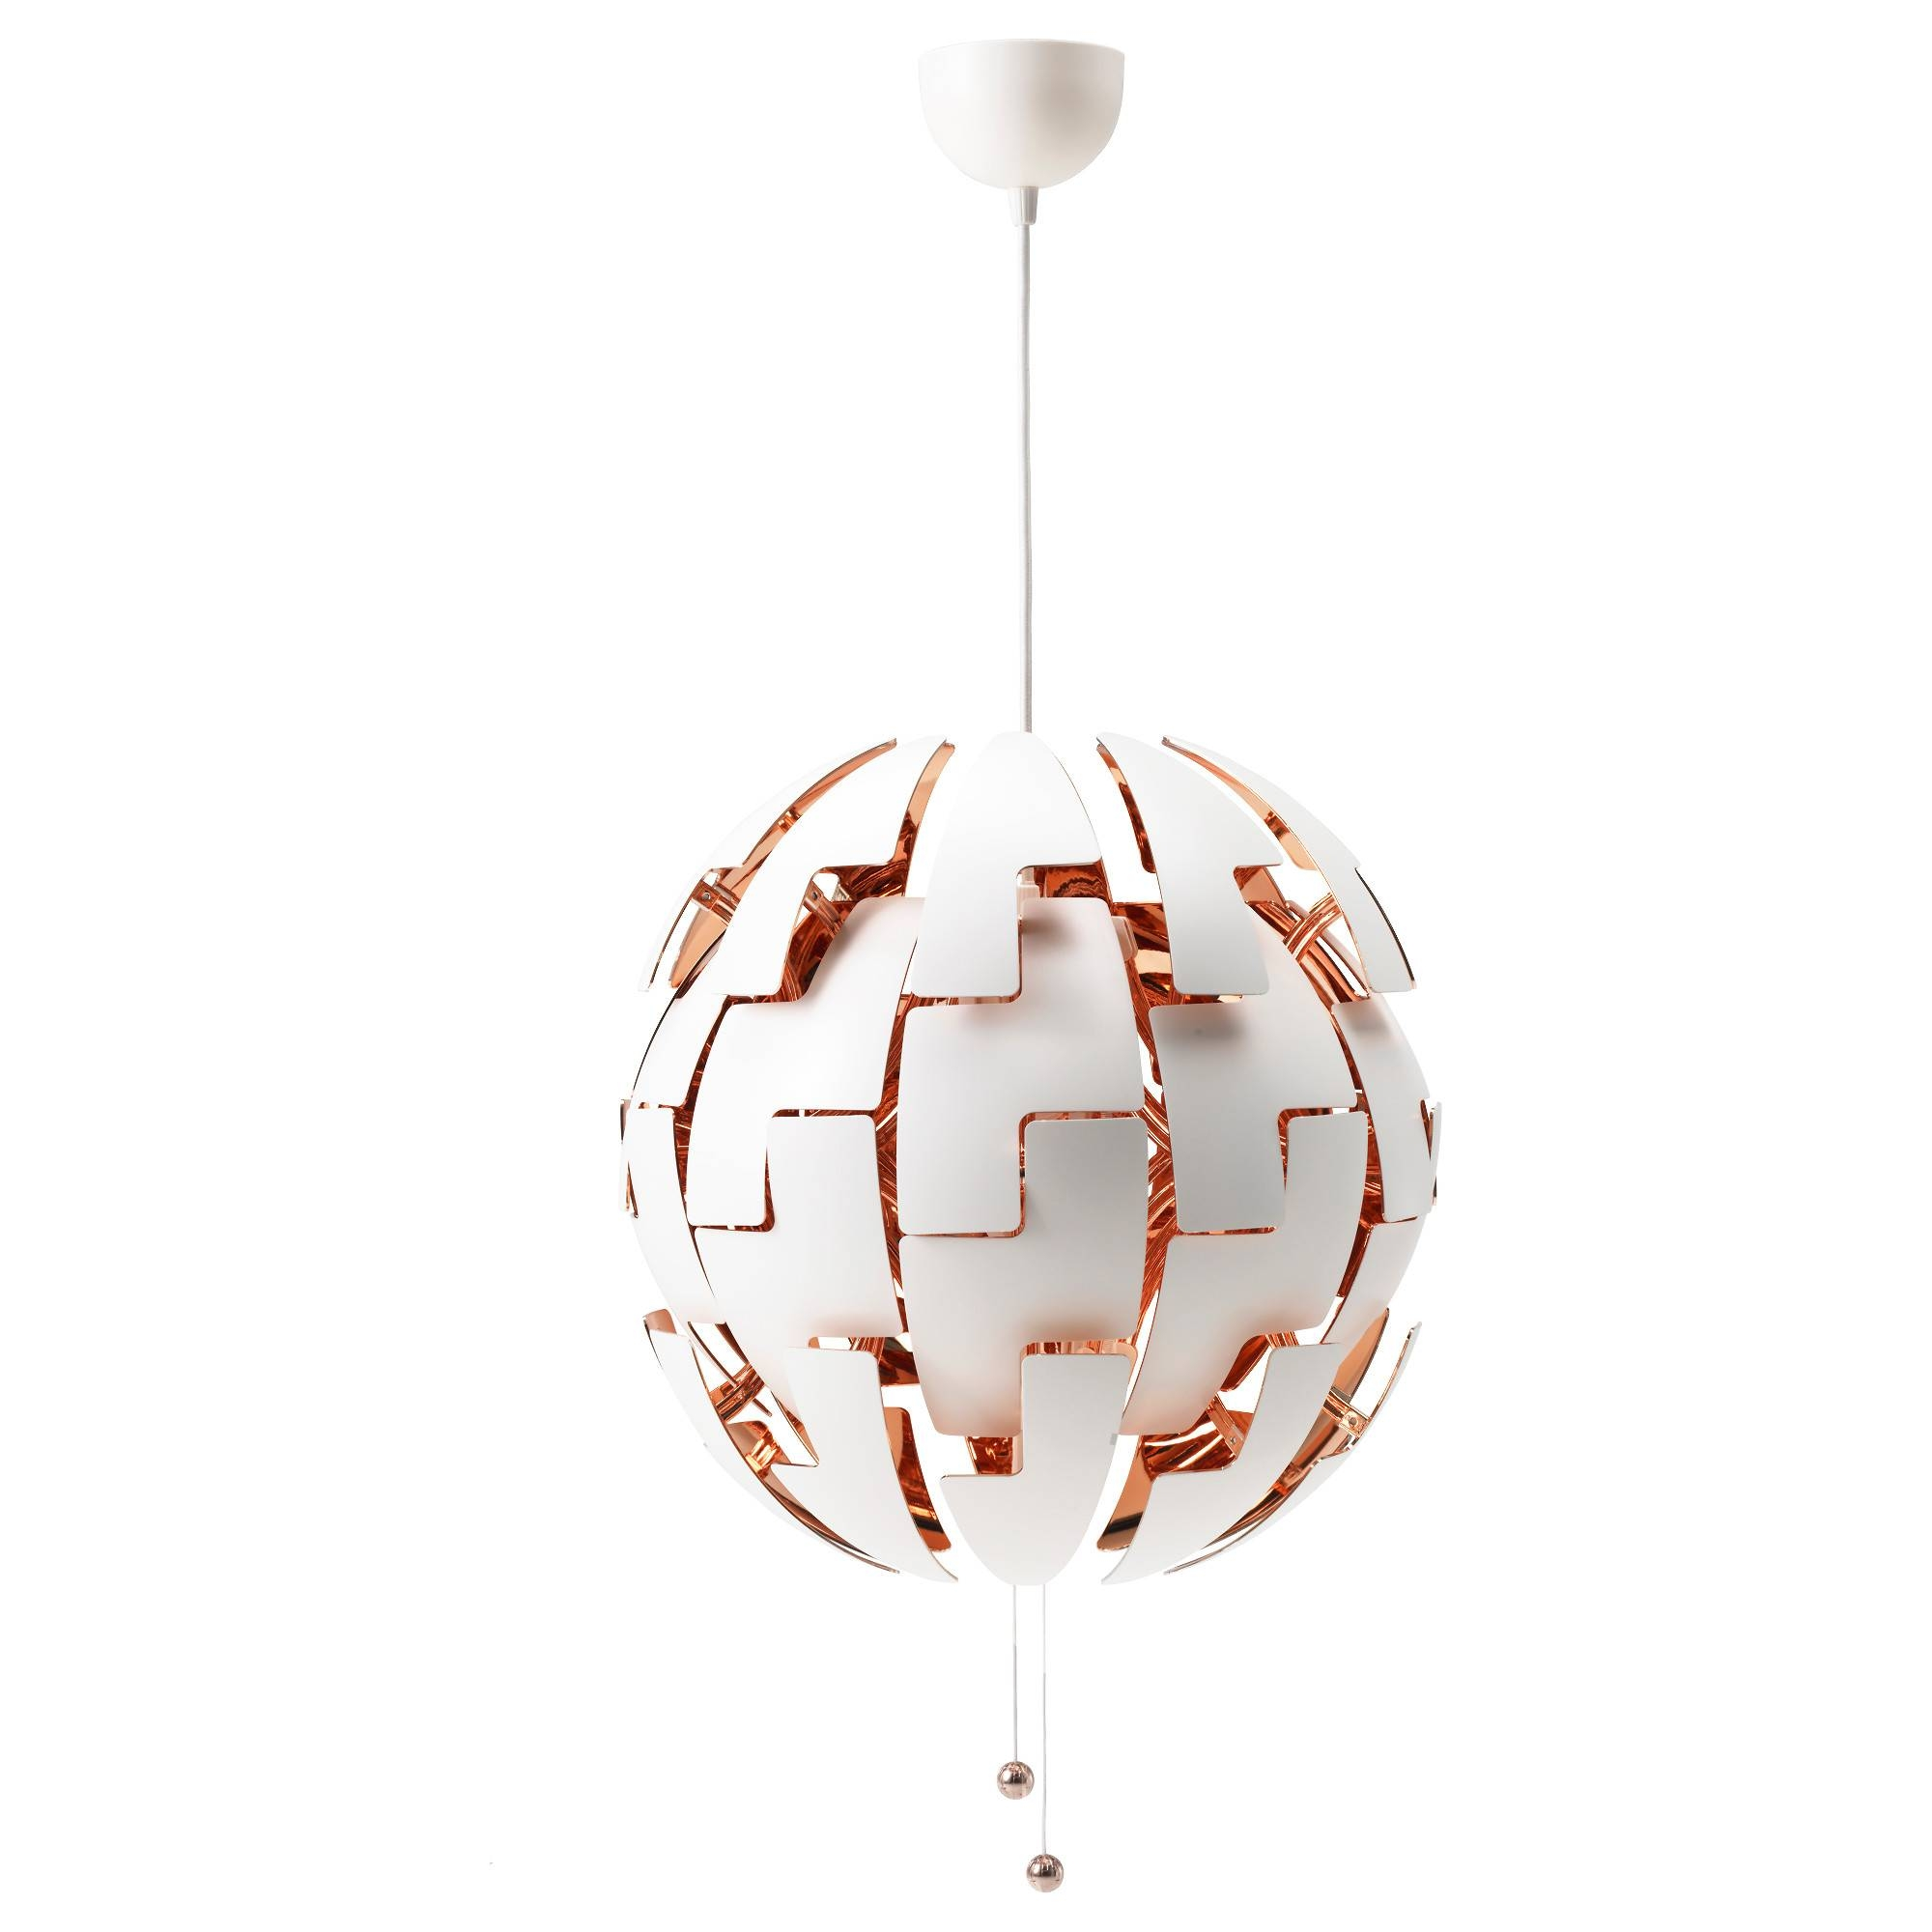 Ikea Ps 2014 Pendant Lamp - White/copper Color - Ikea within Ikea Pendant Lights Fixtures (Image 9 of 15)